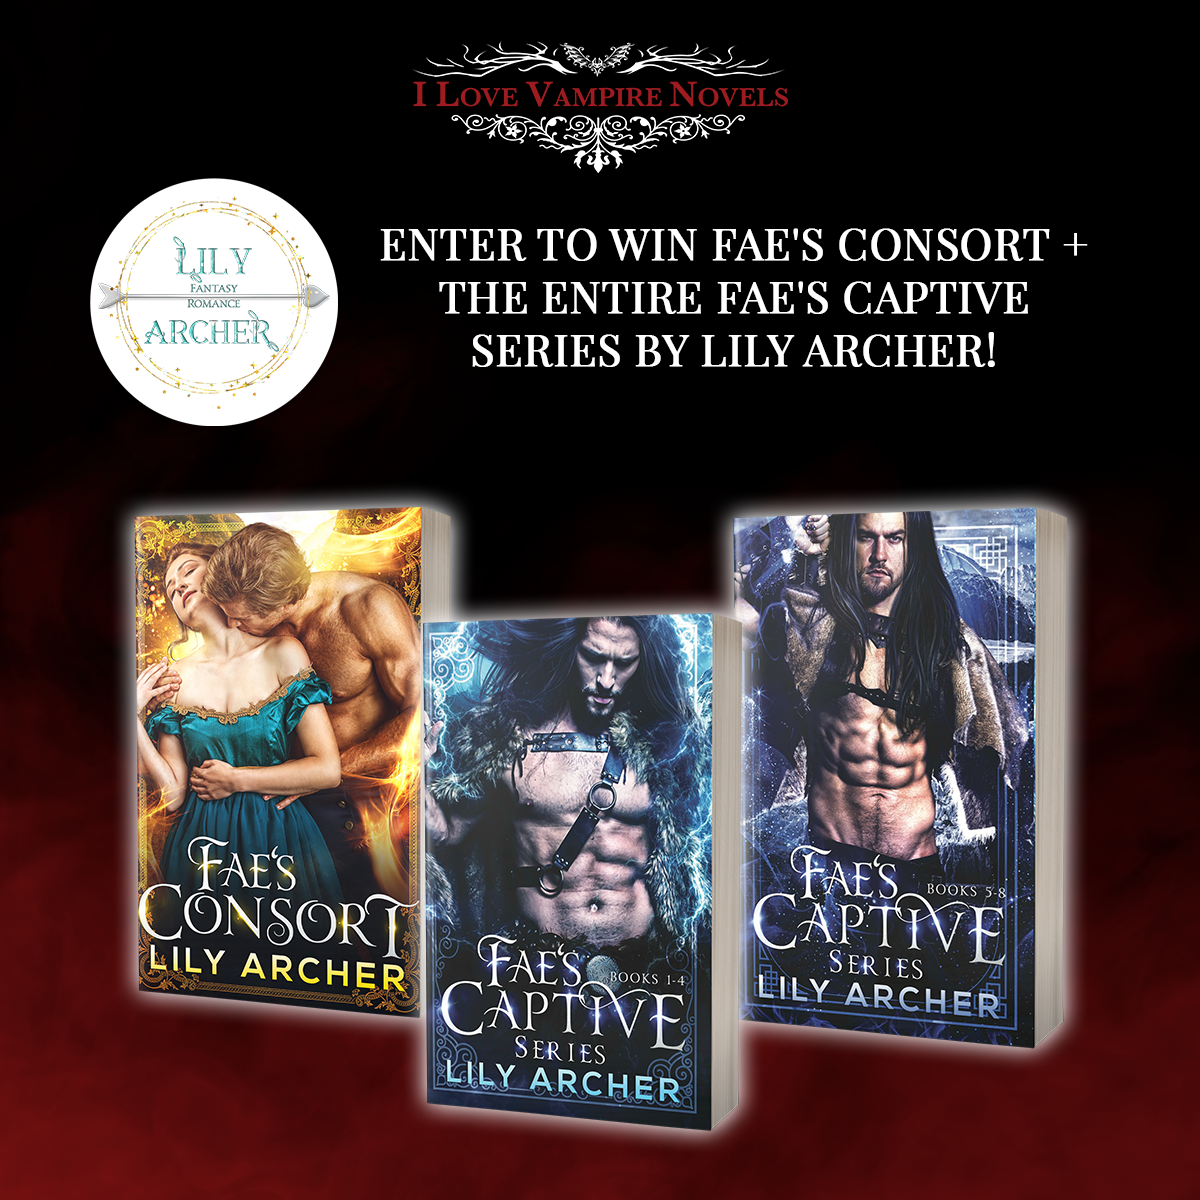 Enter To Win FAE'S CONSORT + The Entire Fae's Captive Series by Lily Archer!